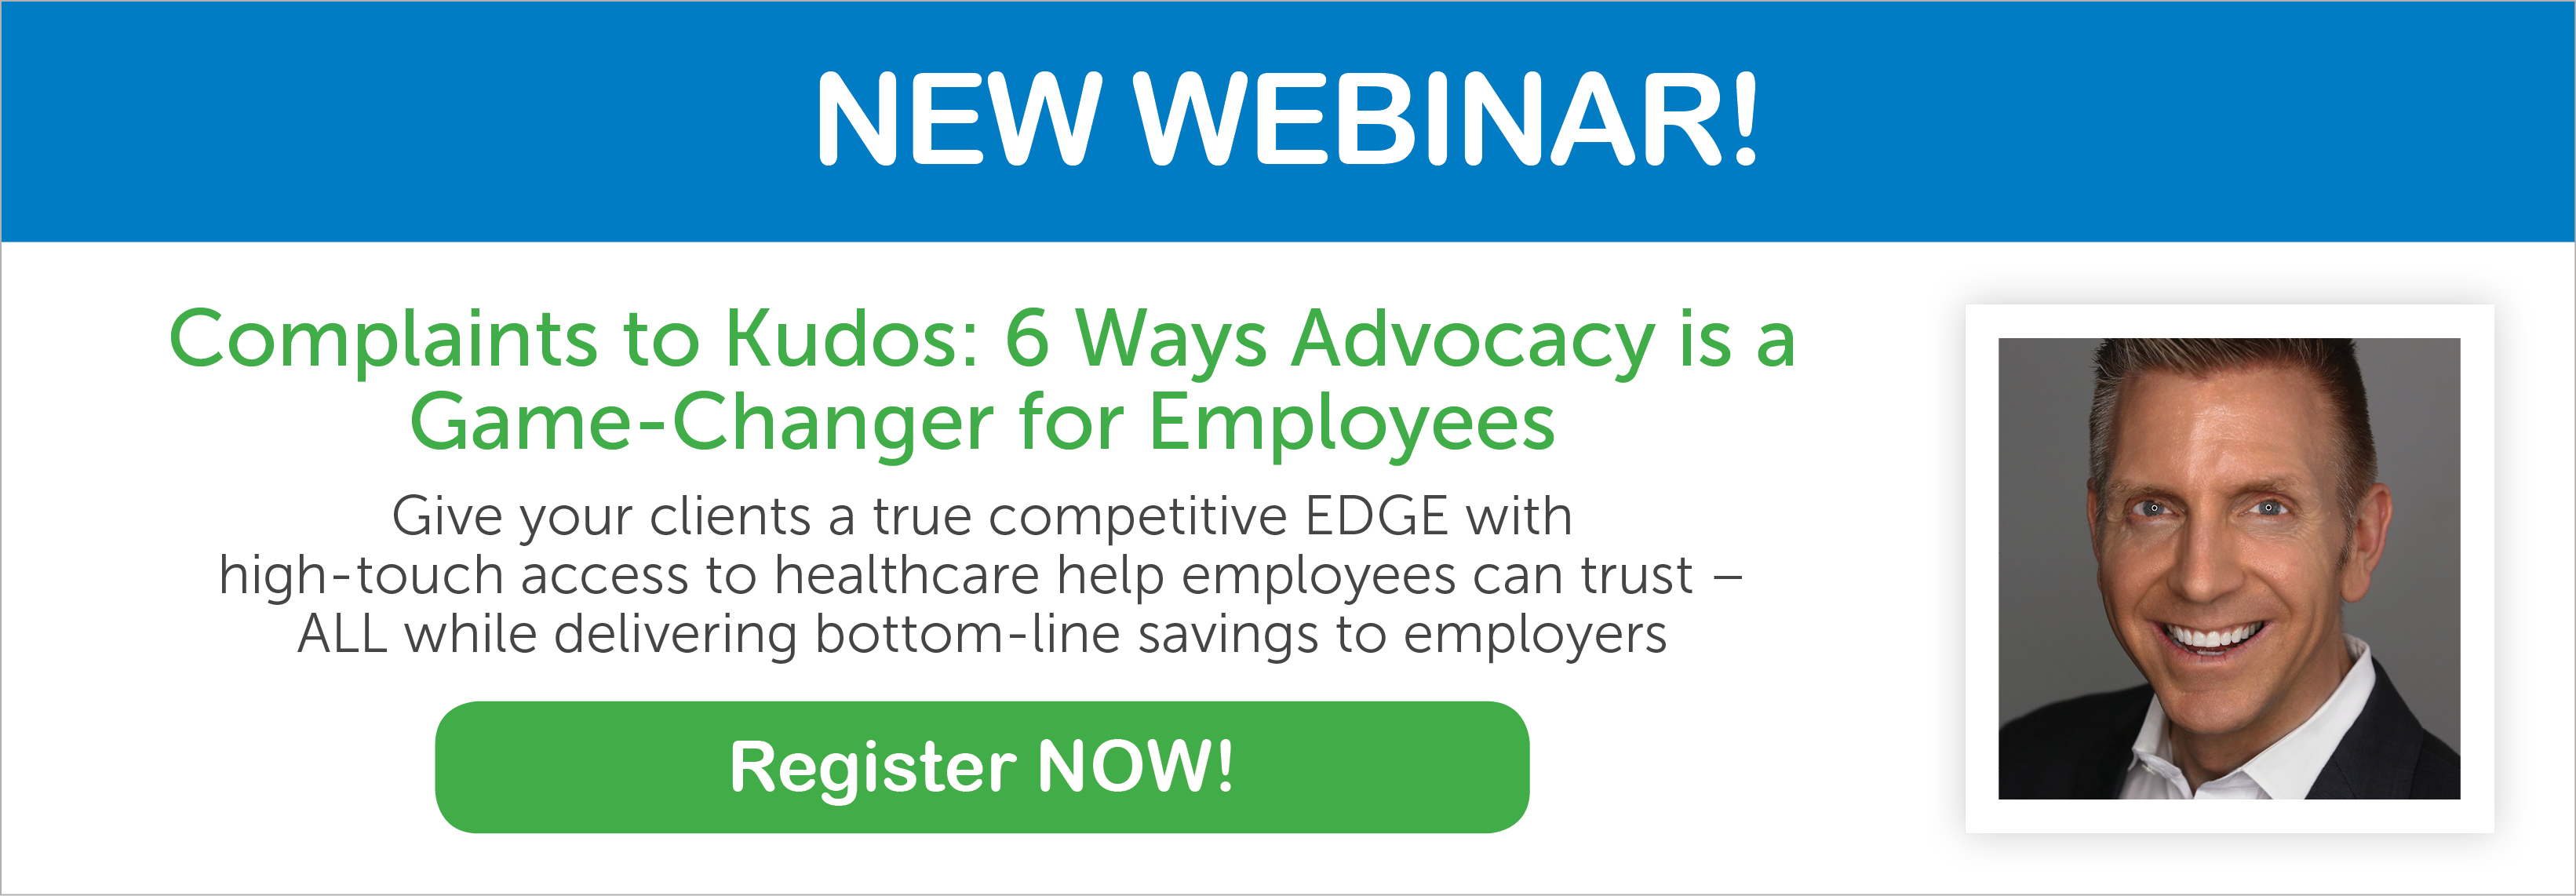 Complaints to Kudos: 6 Ways Advocacy is a Game-Changer